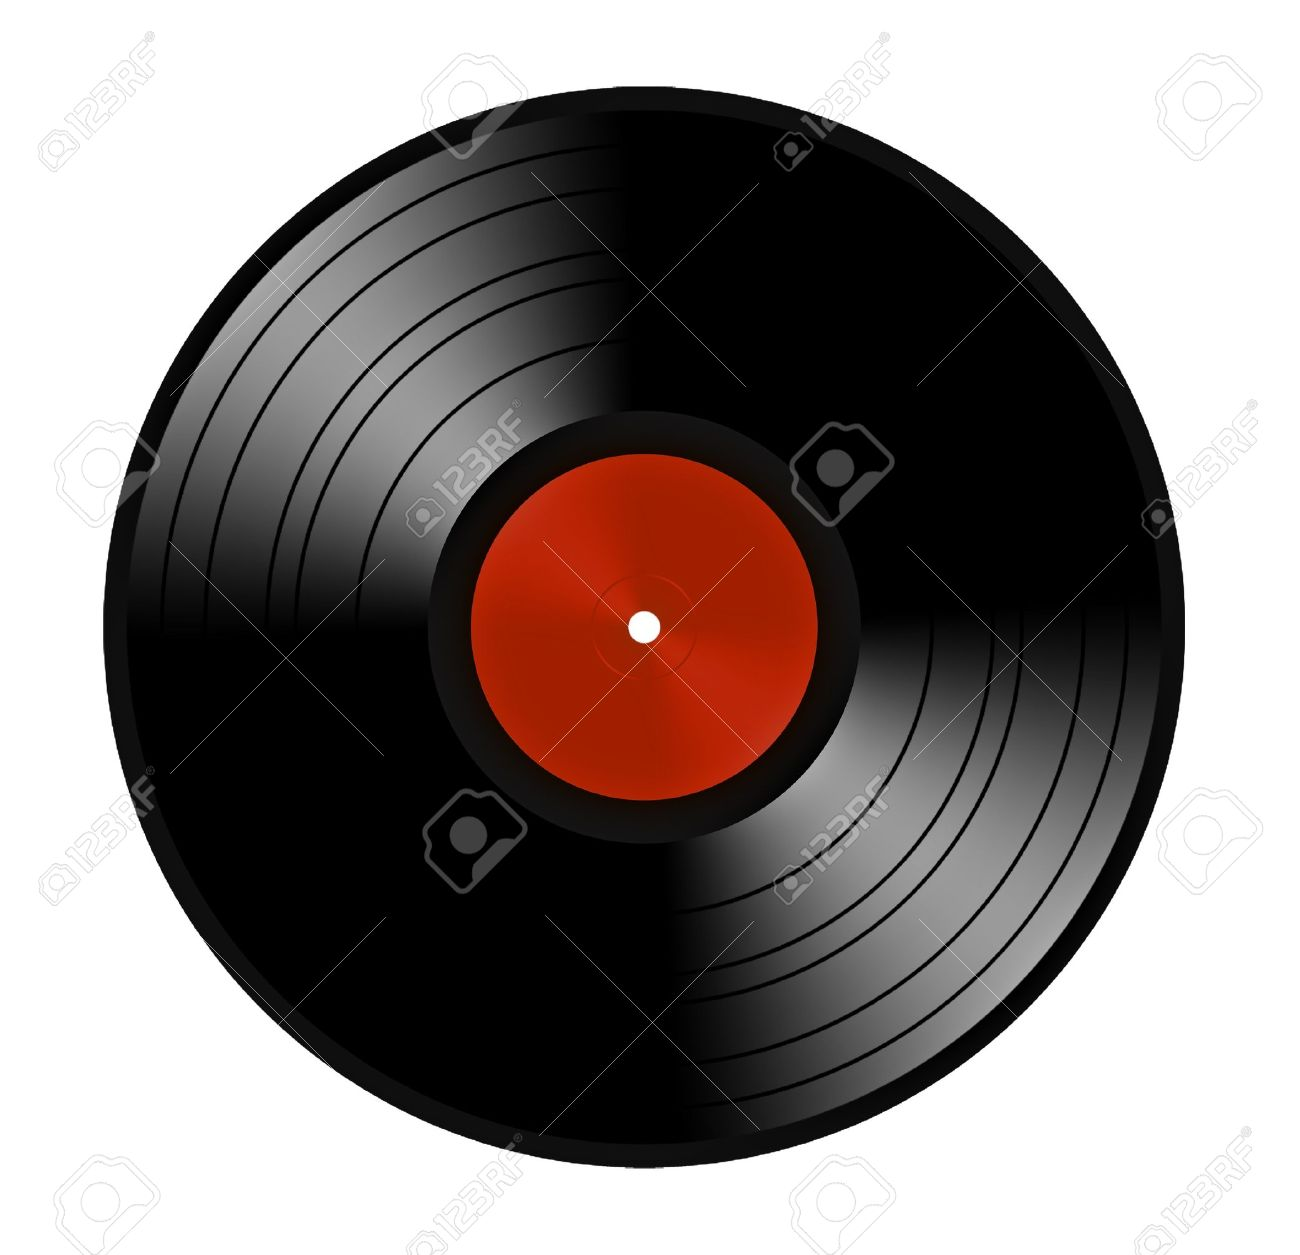 black vinyl record lp album disc stock photo picture and royalty